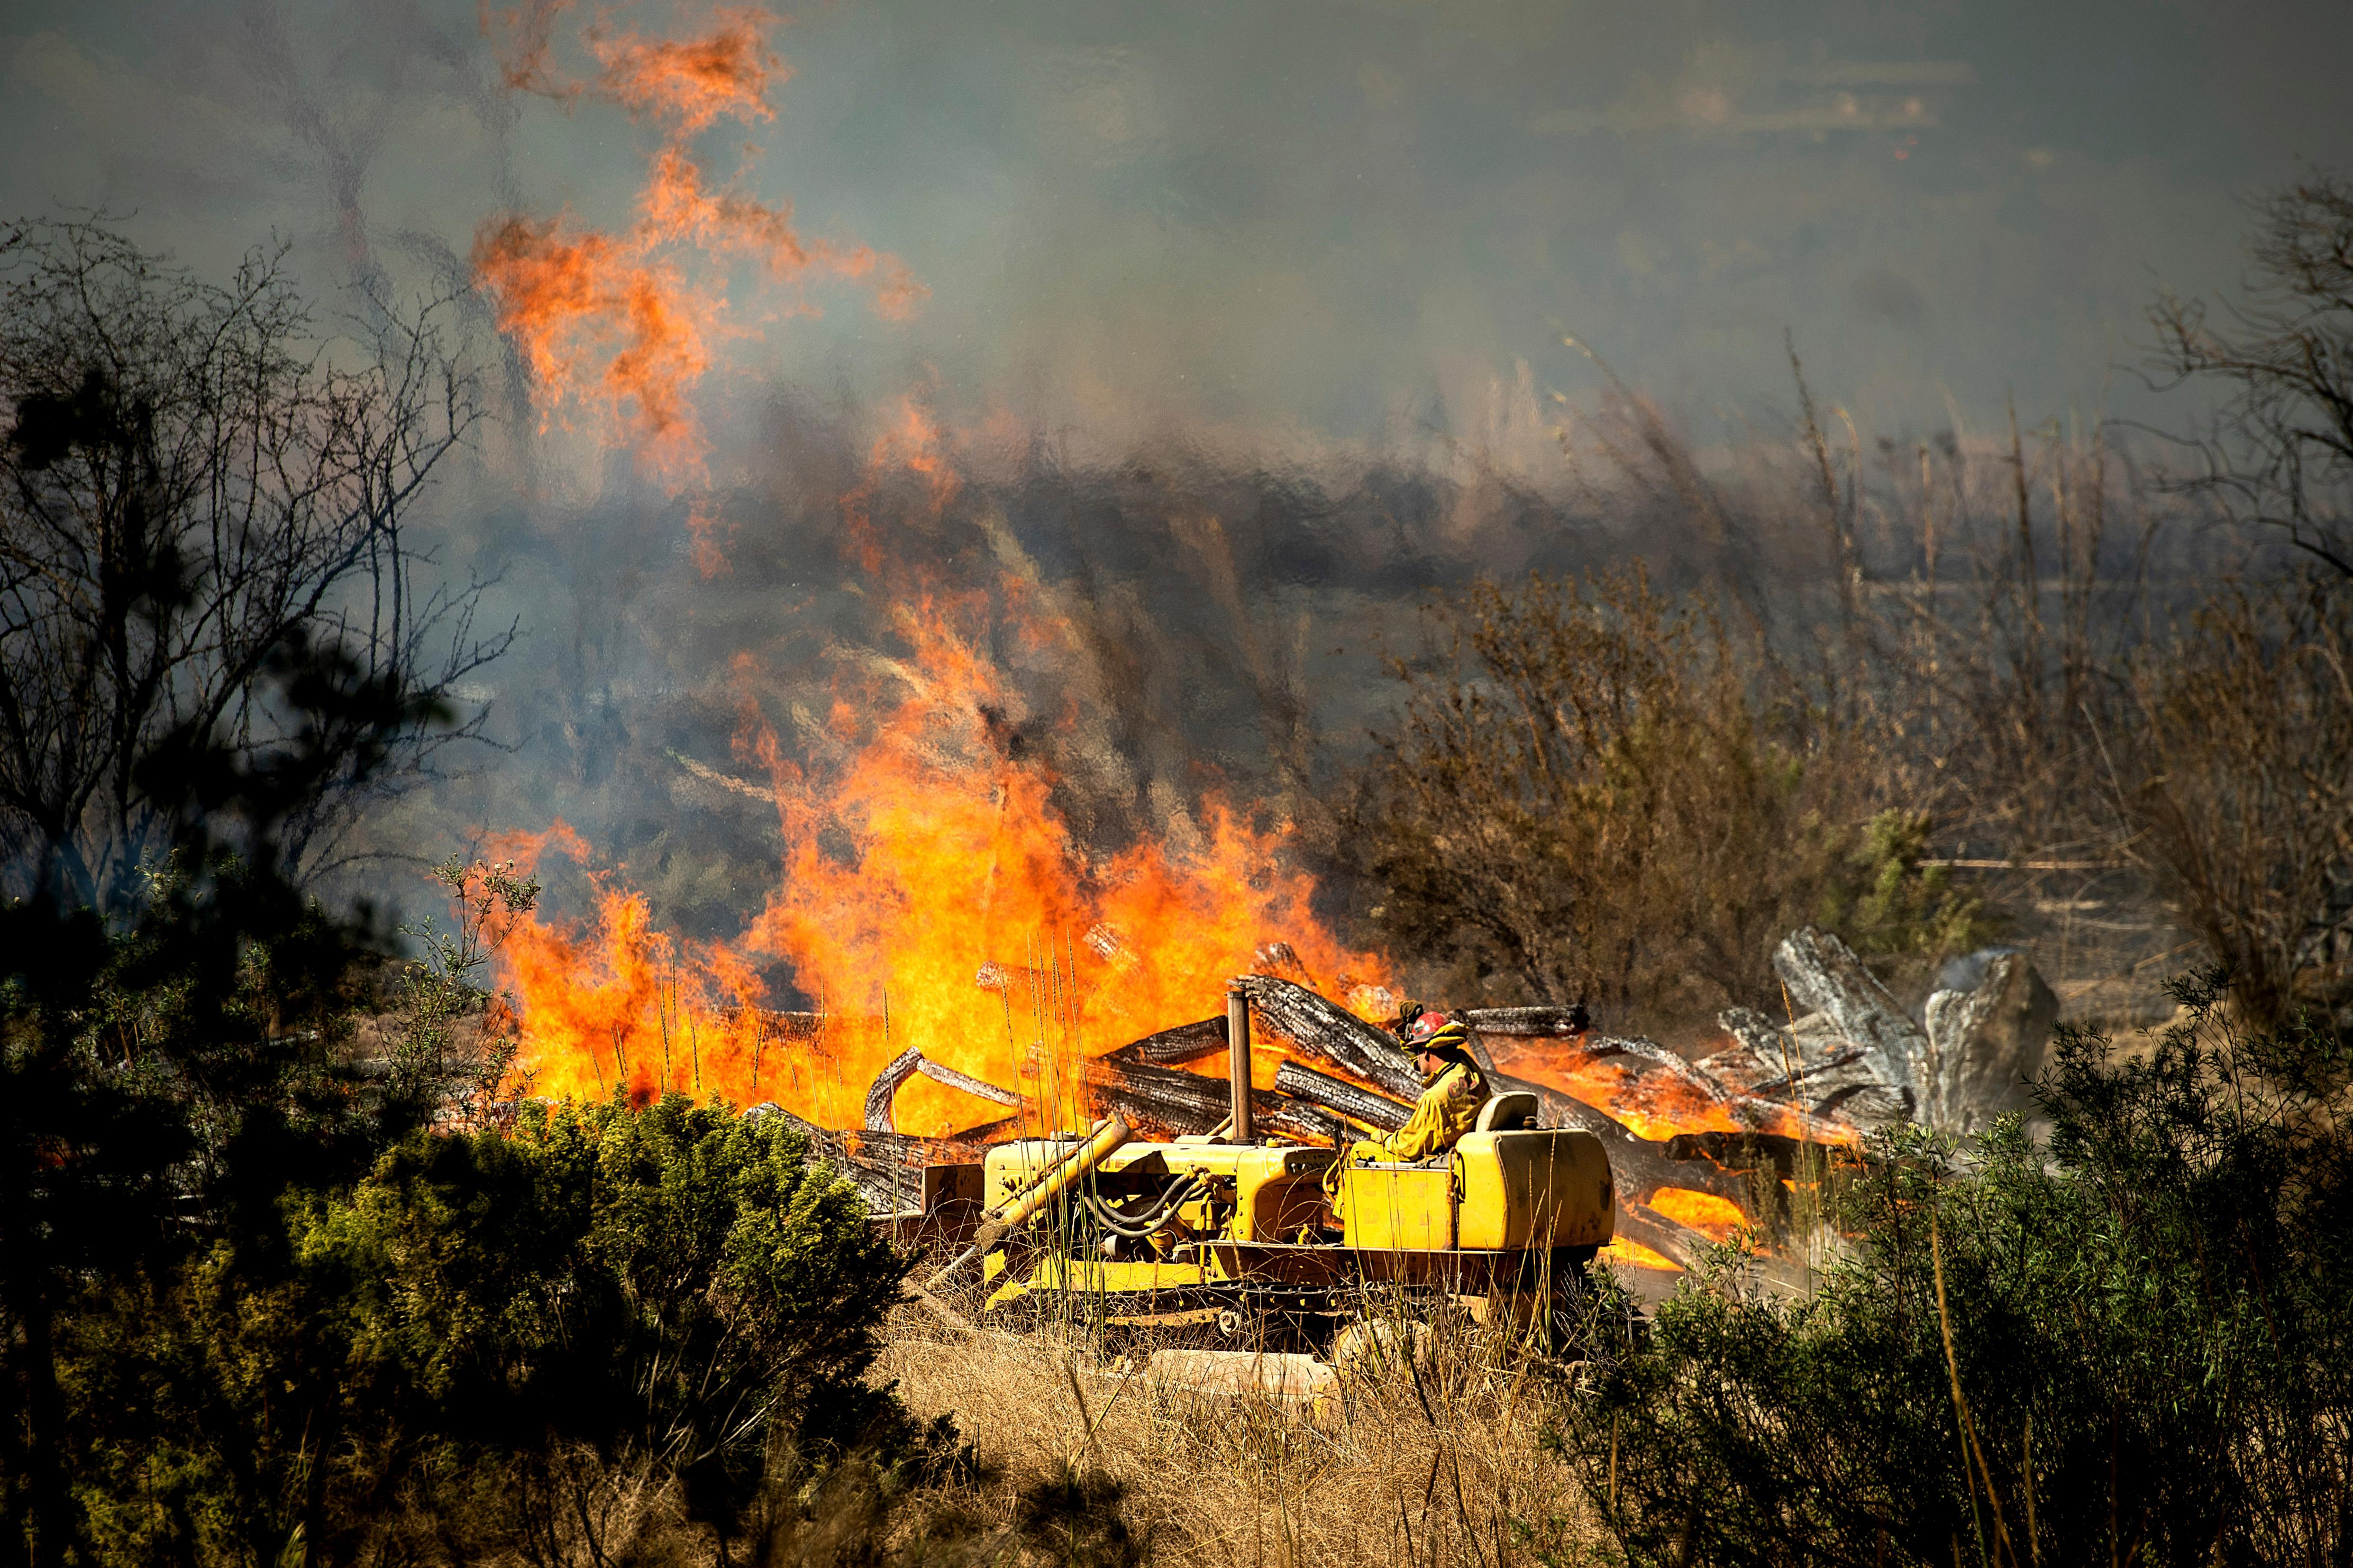 A firefighter creates a fire break as the Maria Fire approaches in Santa Paula, Calif., on Friday, Nov. 1, 2019. According to Ventura County Fire Department, the blaze has scorched more than 8,000 acres and destroyed at least two structures. (AP Photo/Noah Berger)